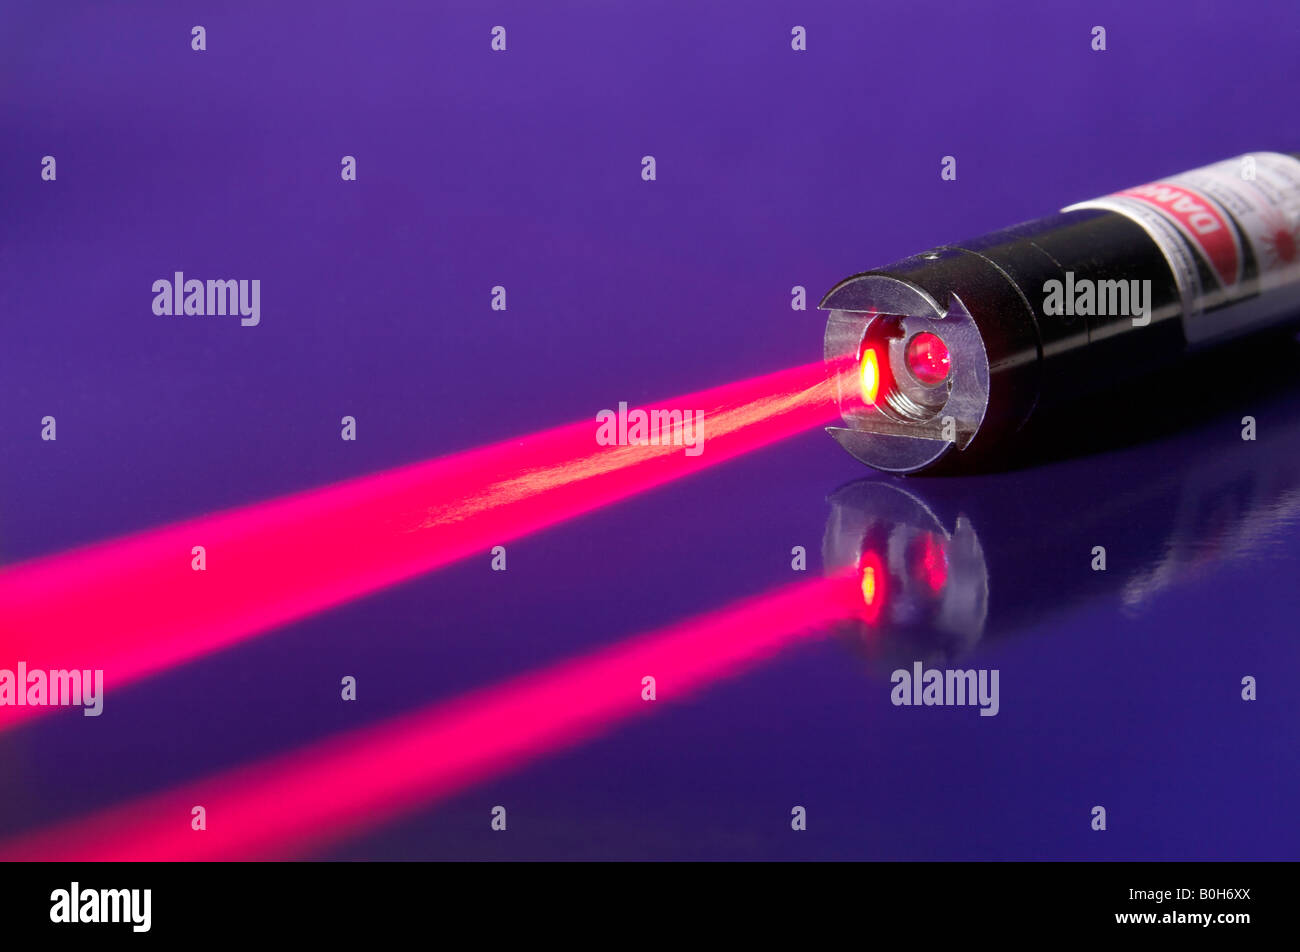 Red beam emitted by a laser - Stock Image